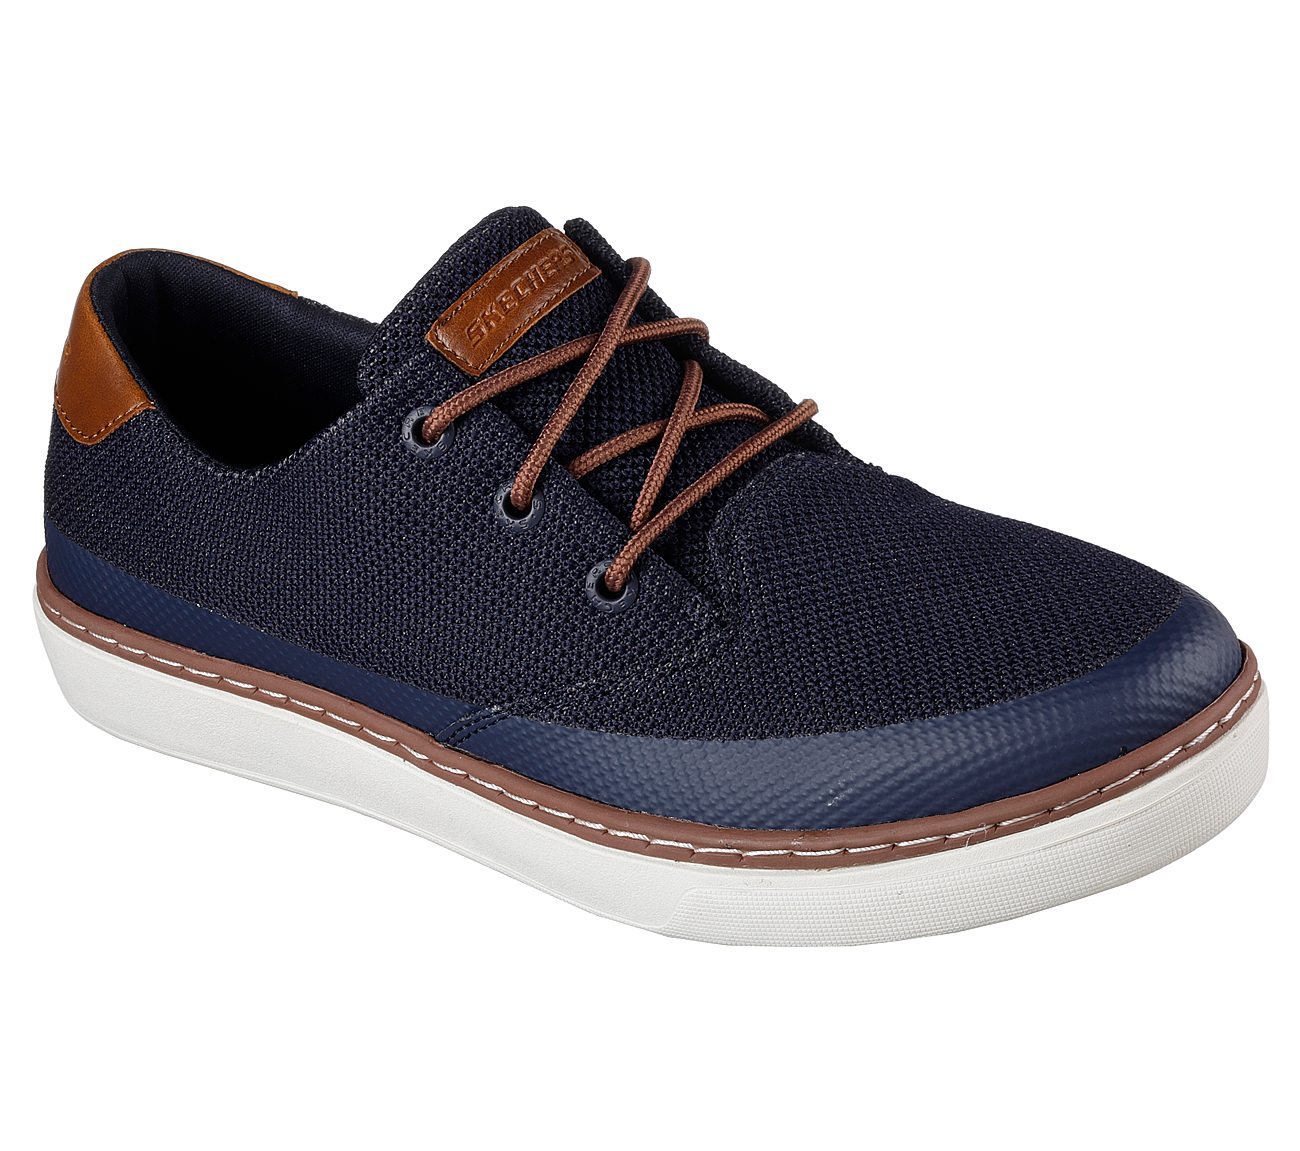 Hover to zoom. Navy